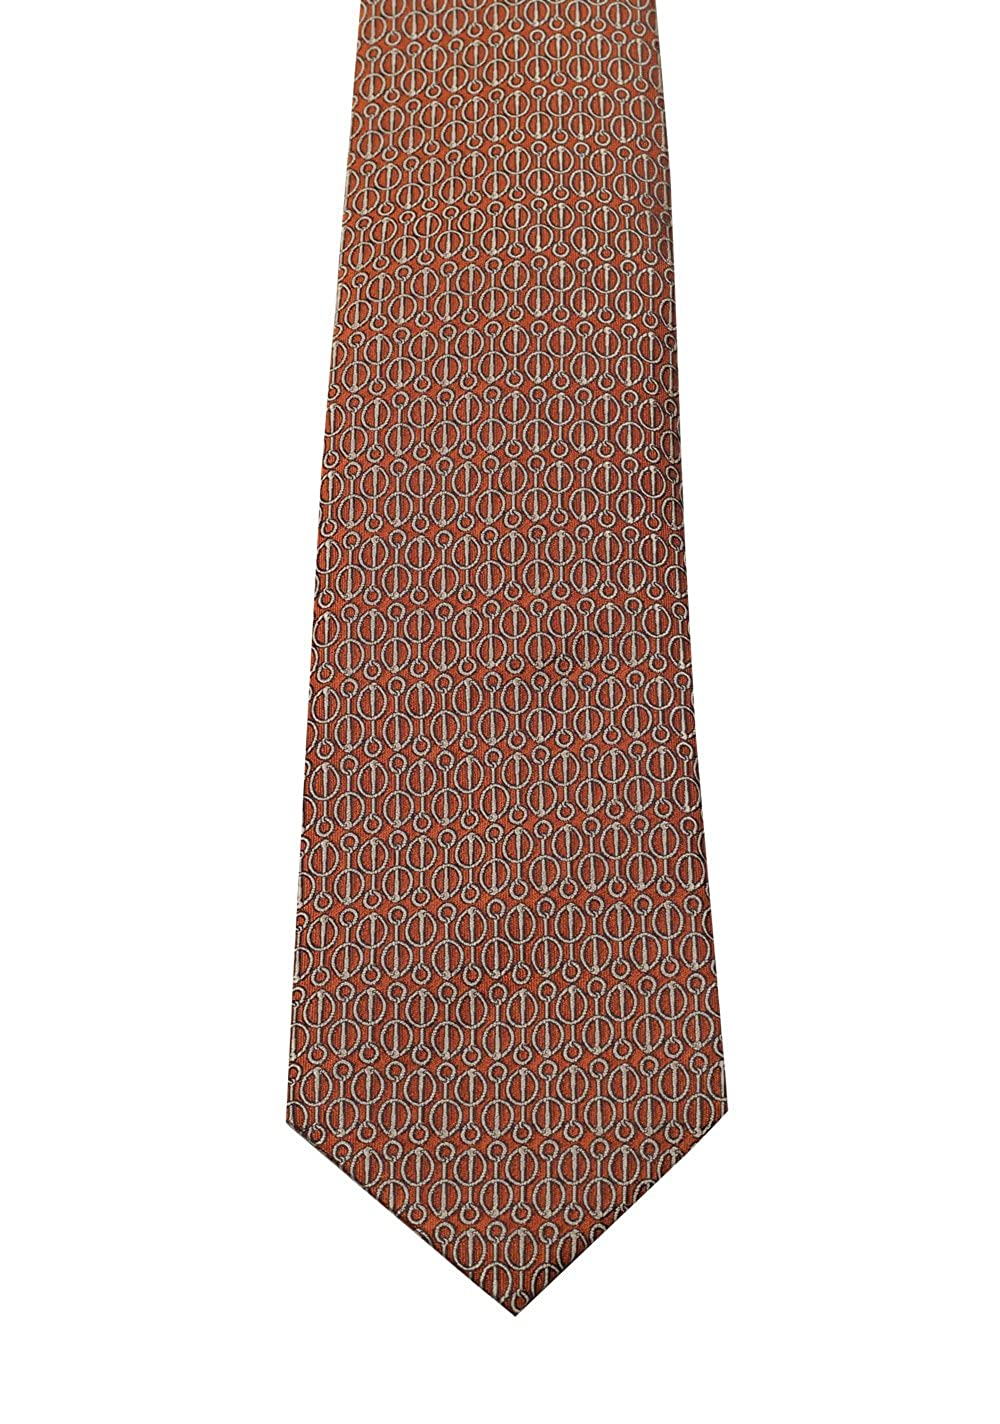 Gucci CL Brown Patterned Tie: Amazon.es: Ropa y accesorios